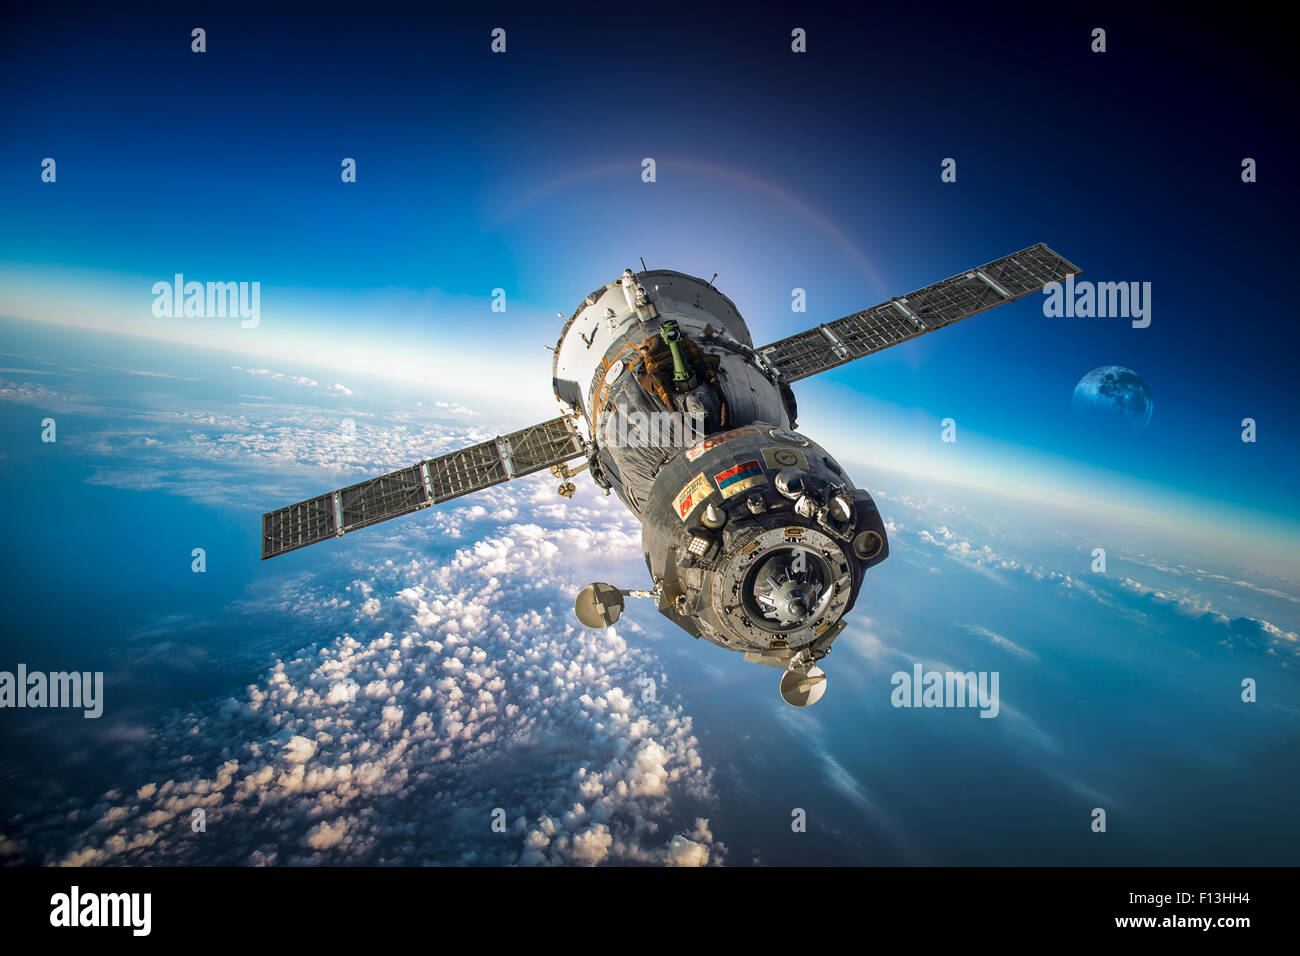 Spacecraft Soyuz orbiting the earth. Elements of this image furnished by NASA. - Stock Image